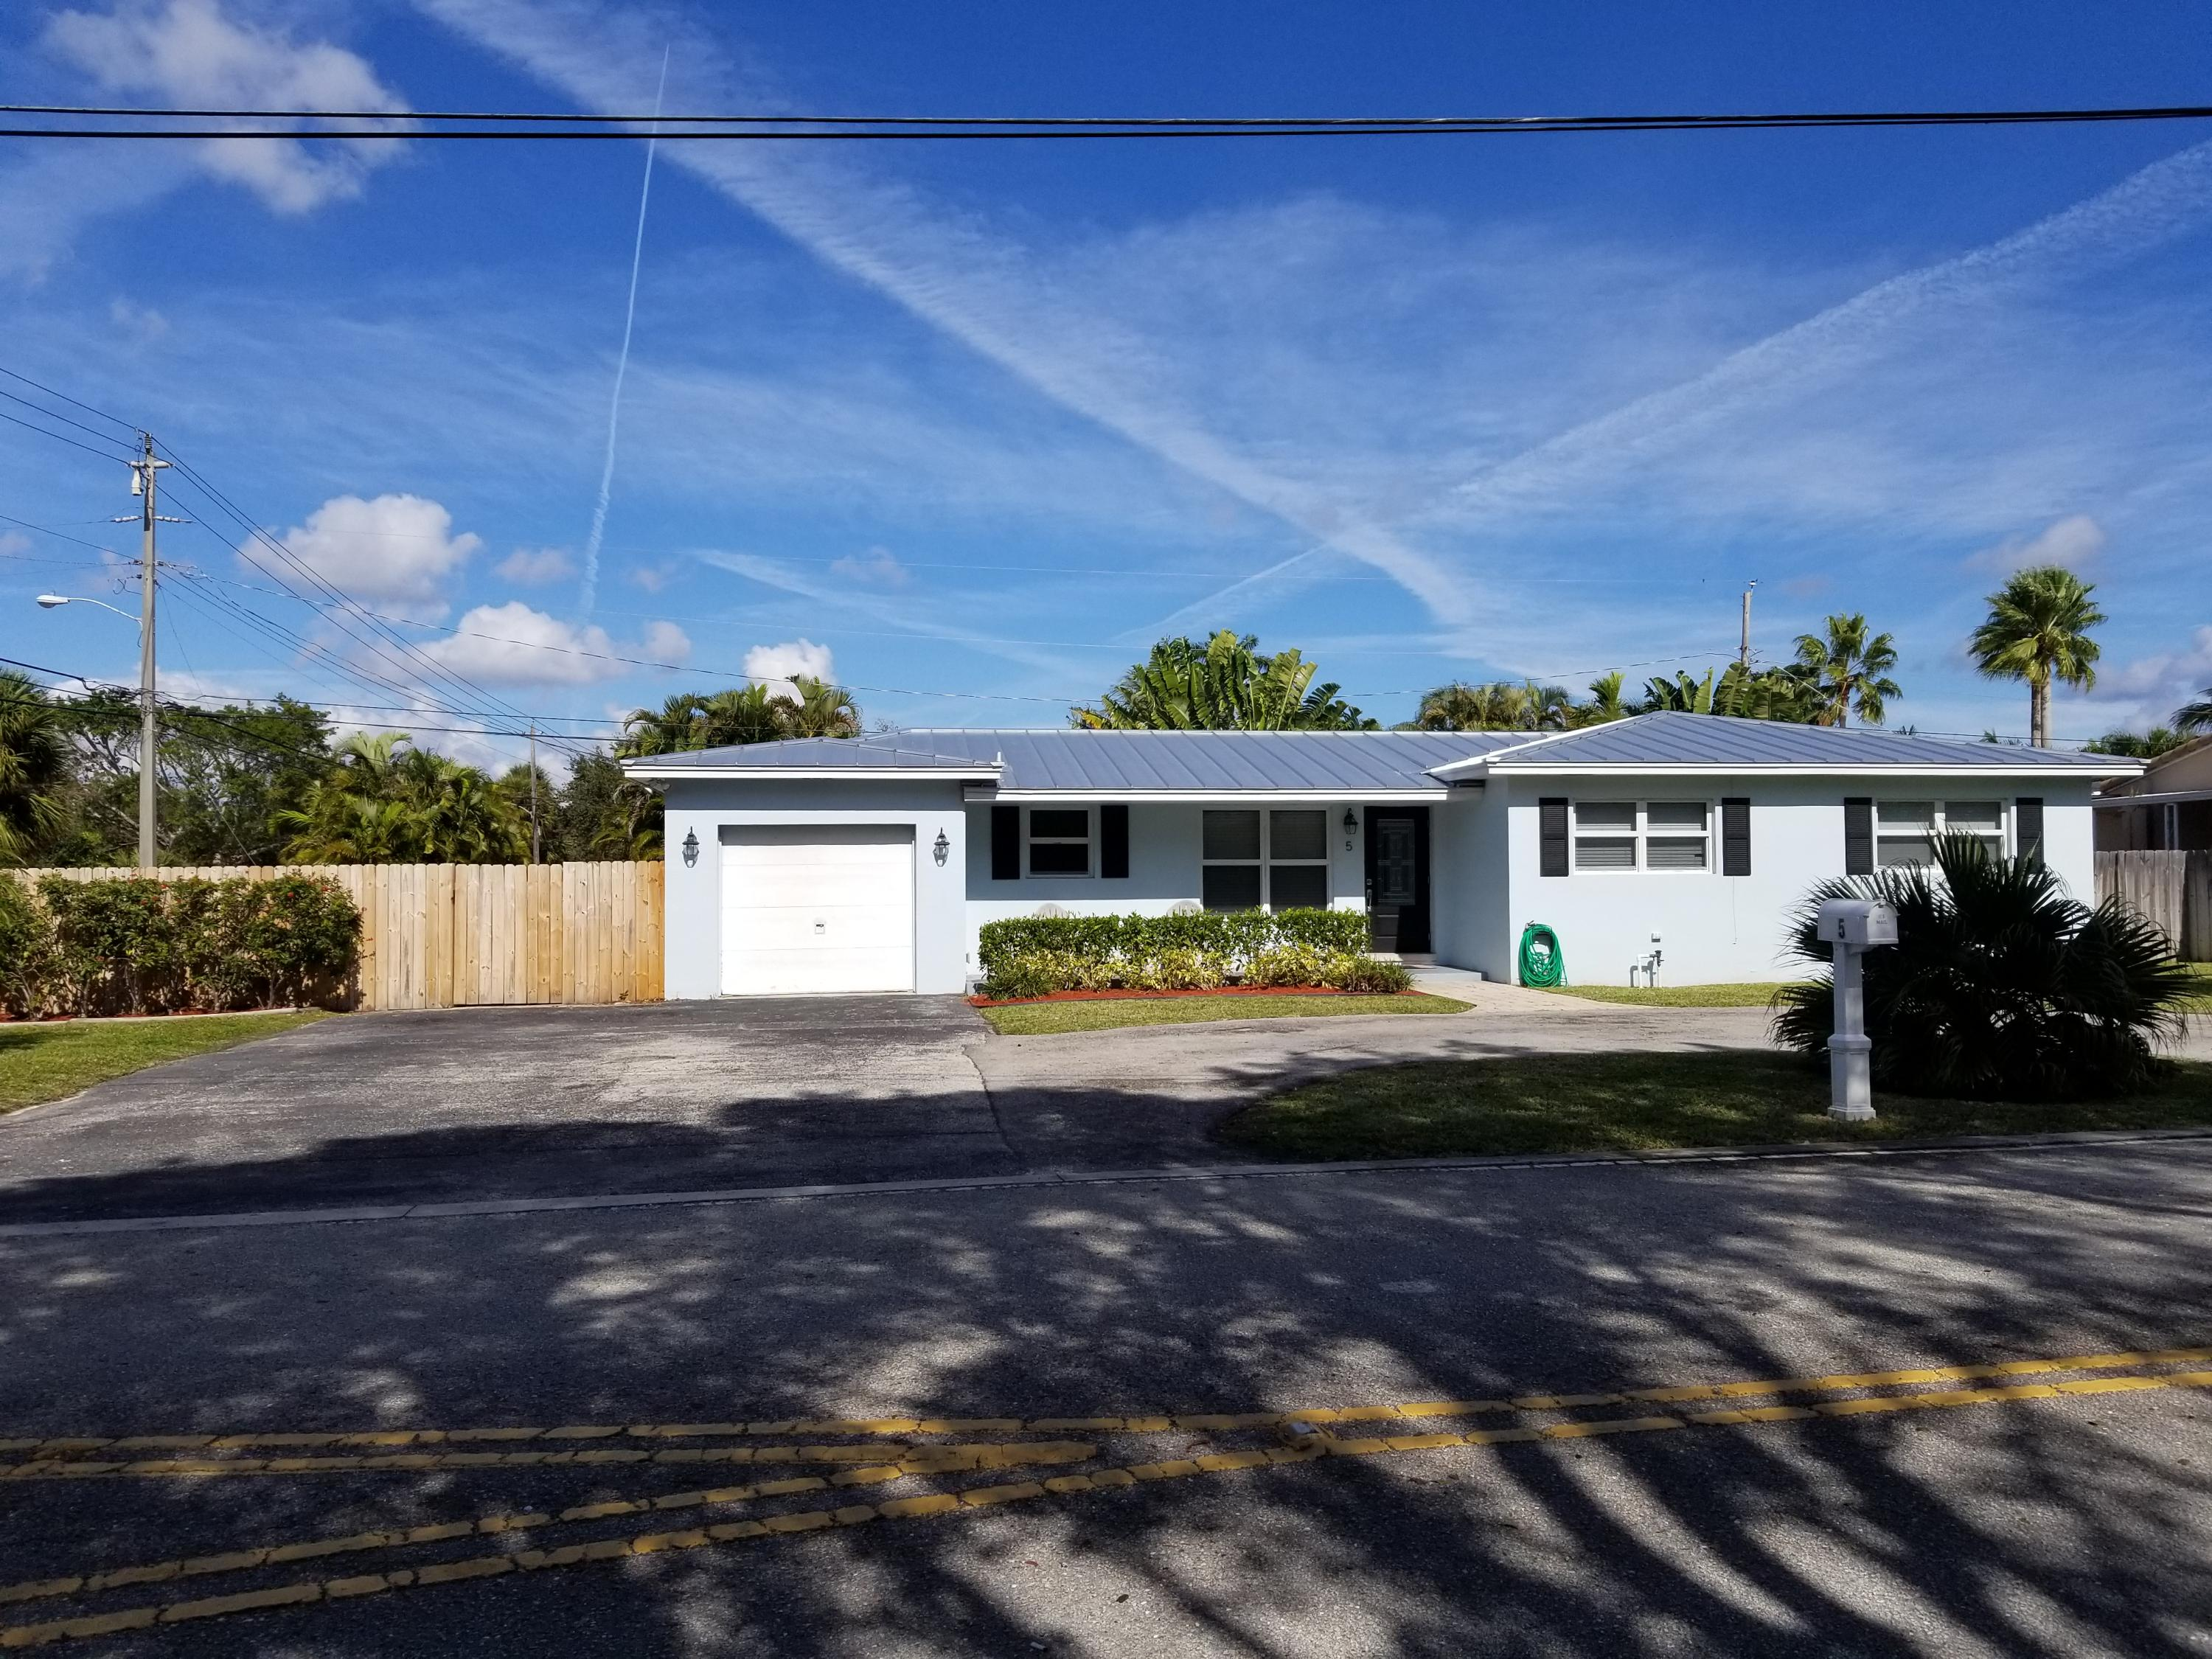 5 16th Street, Delray Beach, Florida 33444, 3 Bedrooms Bedrooms, ,2 BathroomsBathrooms,Single Family,For Sale,16th,RX-10497157